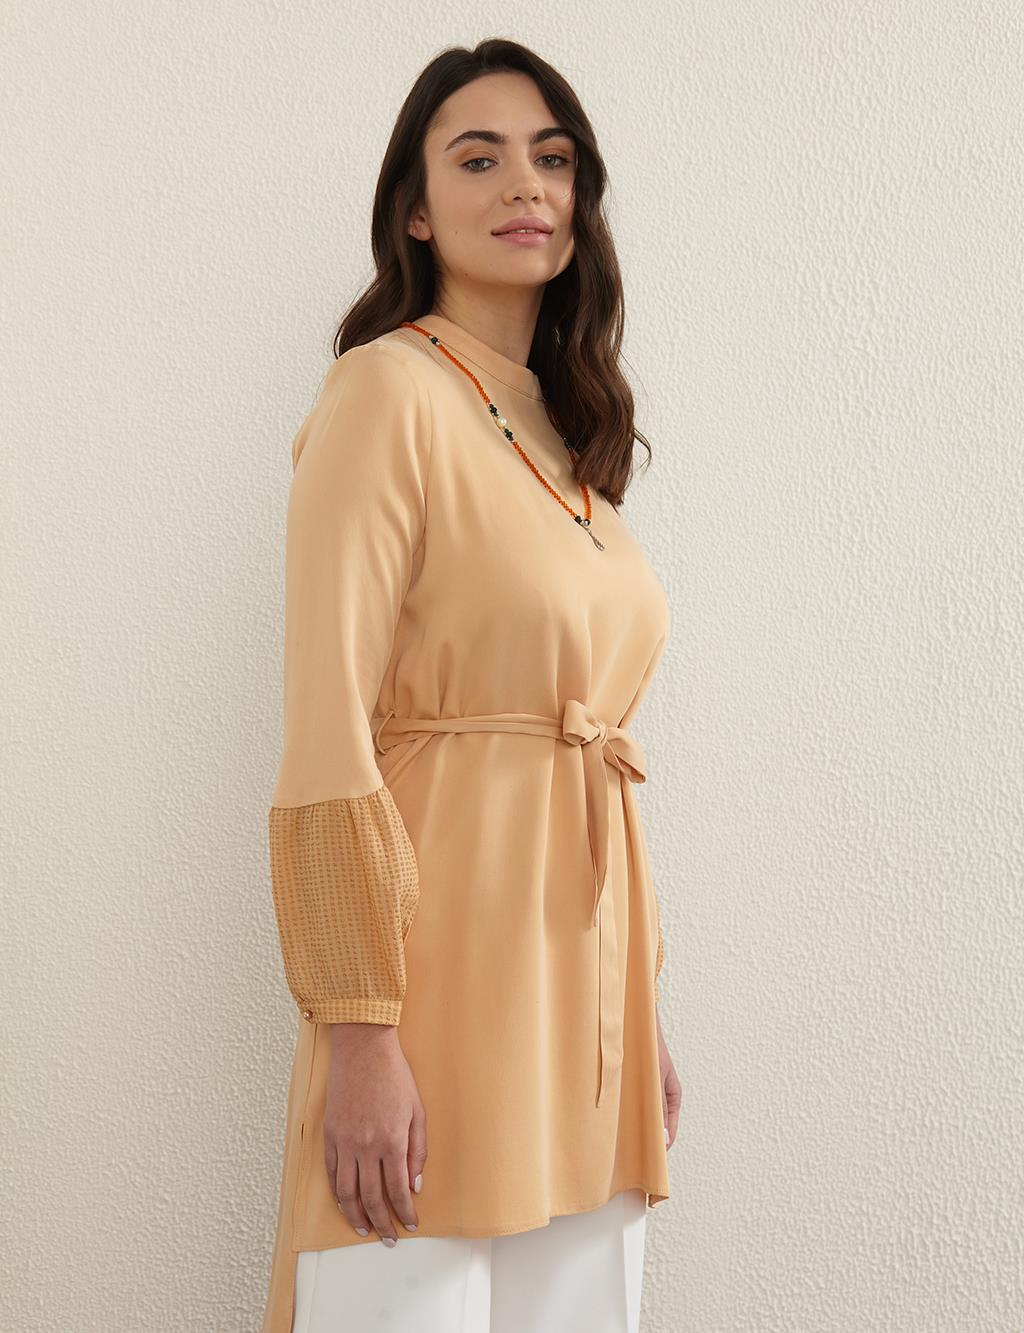 Belted Round Neck Collar Tunic B21 21017 Beige